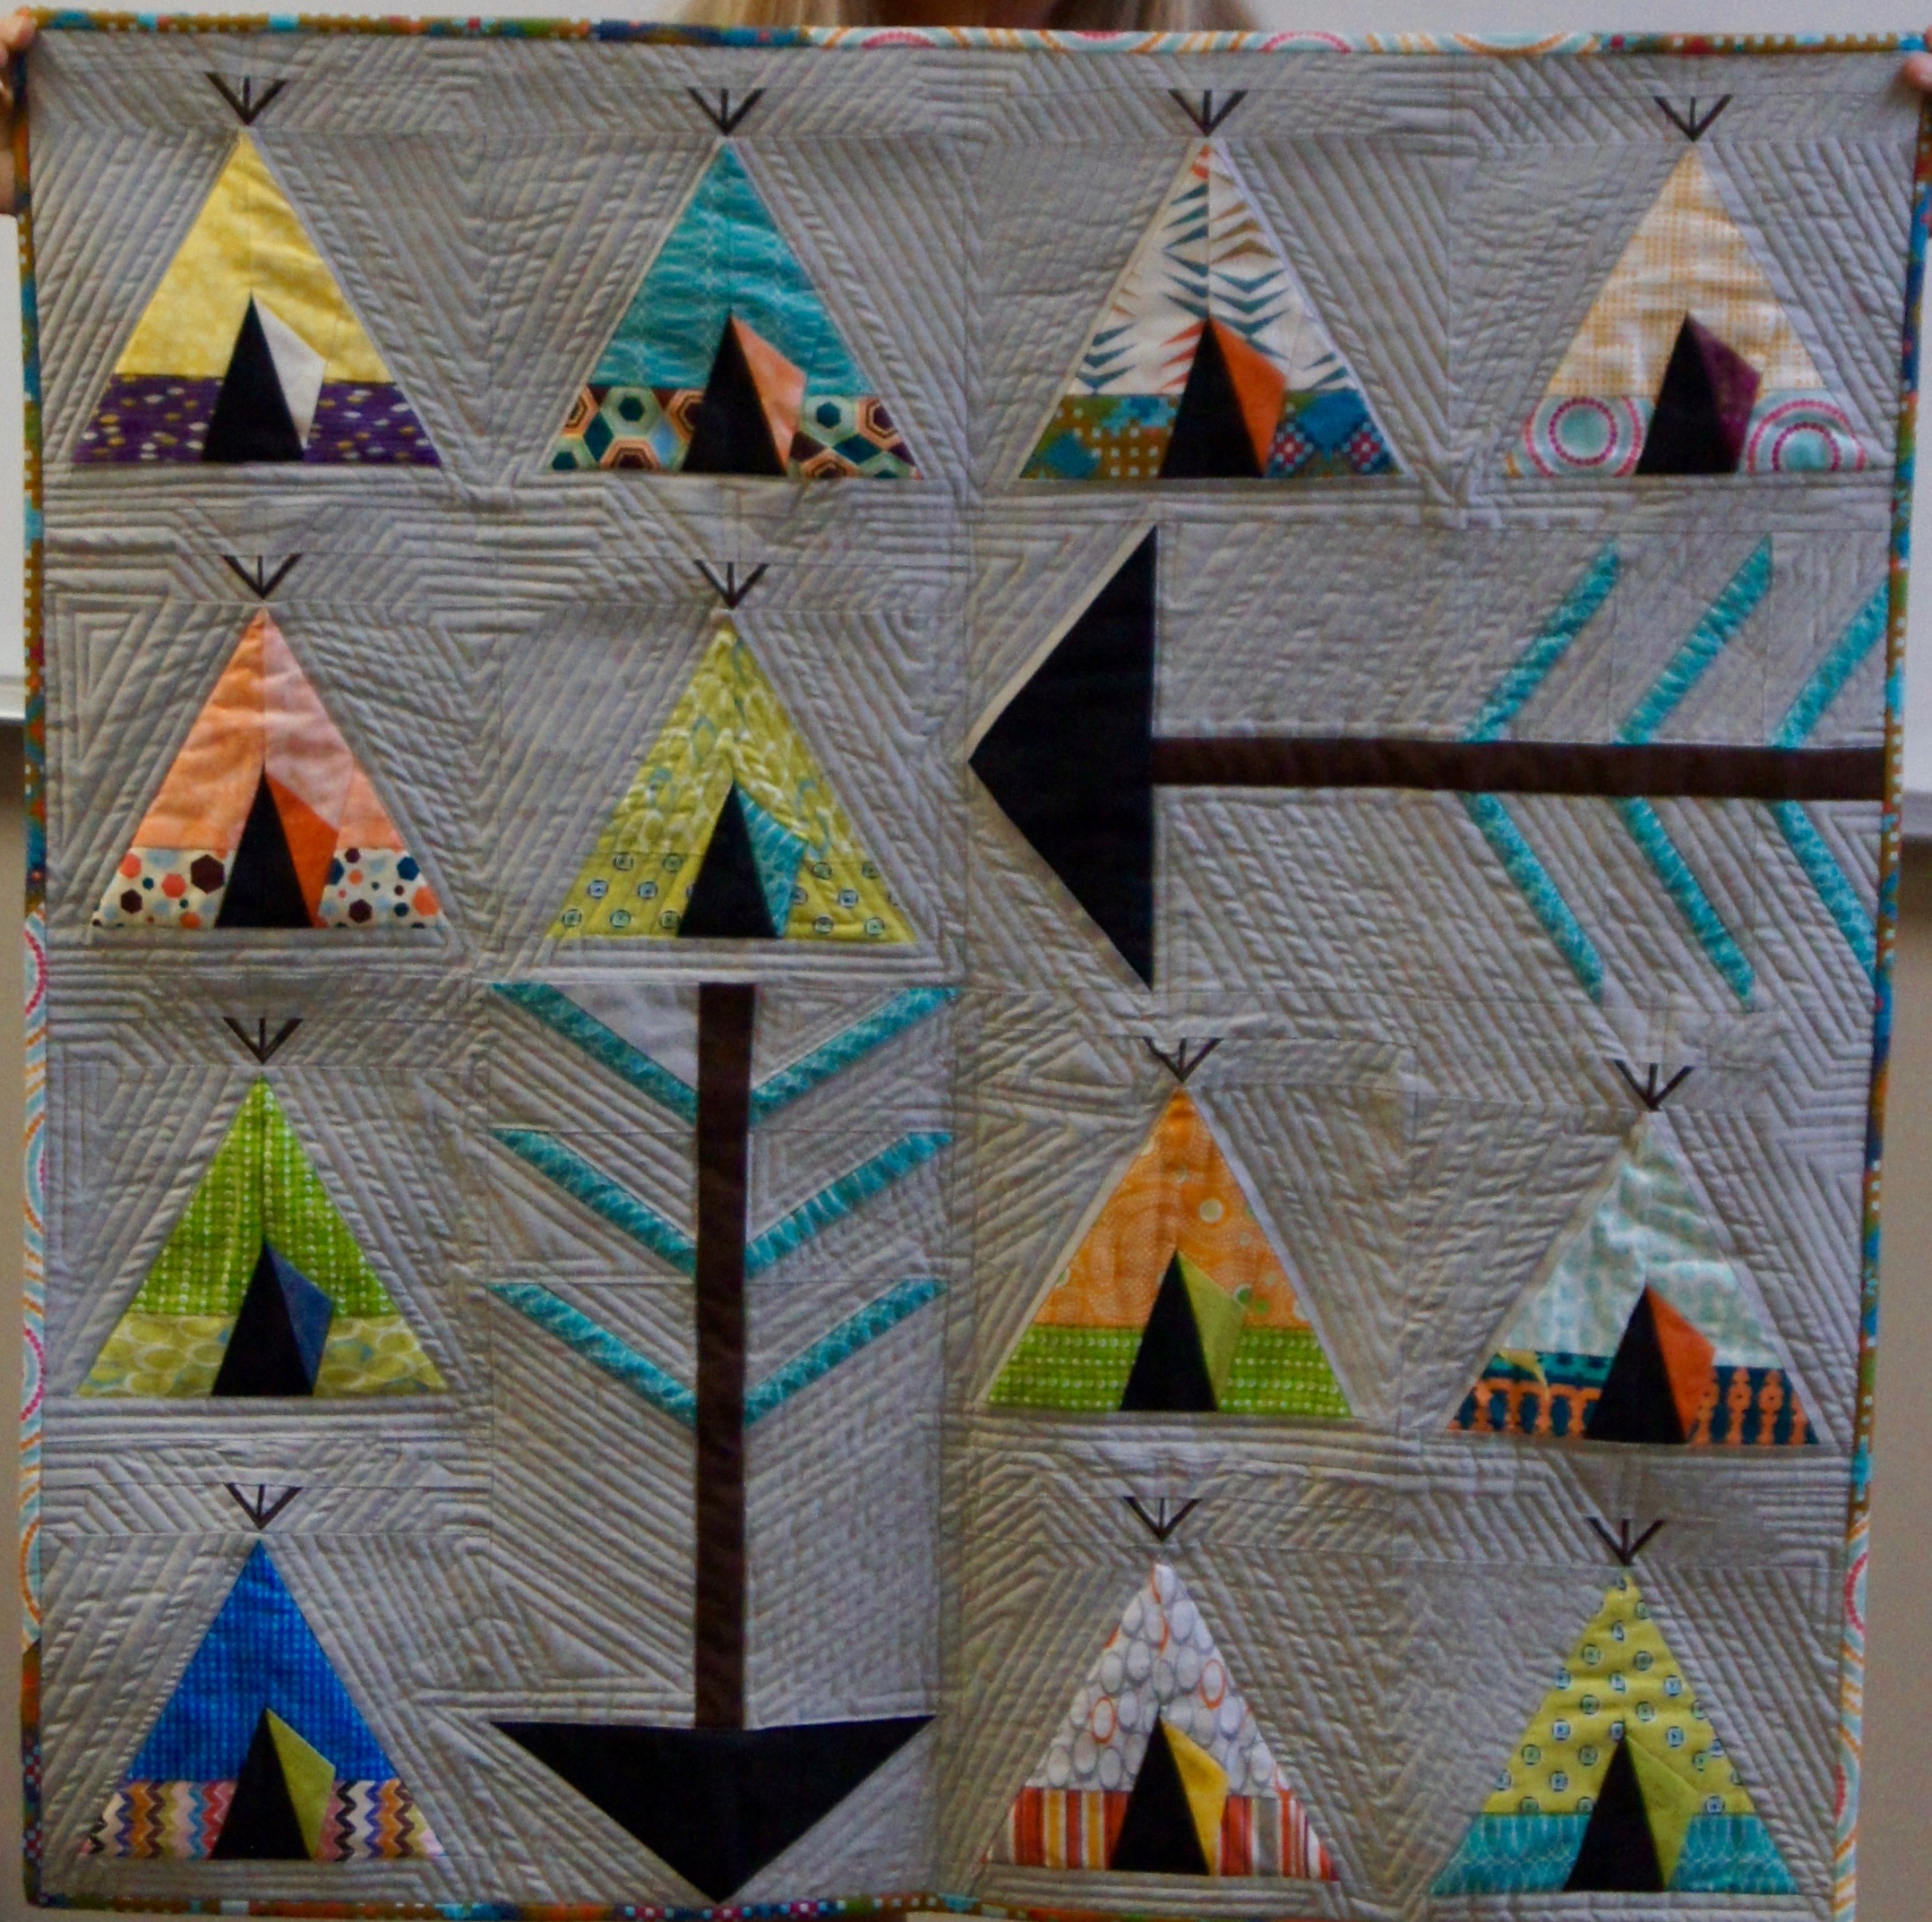 Teepee quilt by Nancy Packard